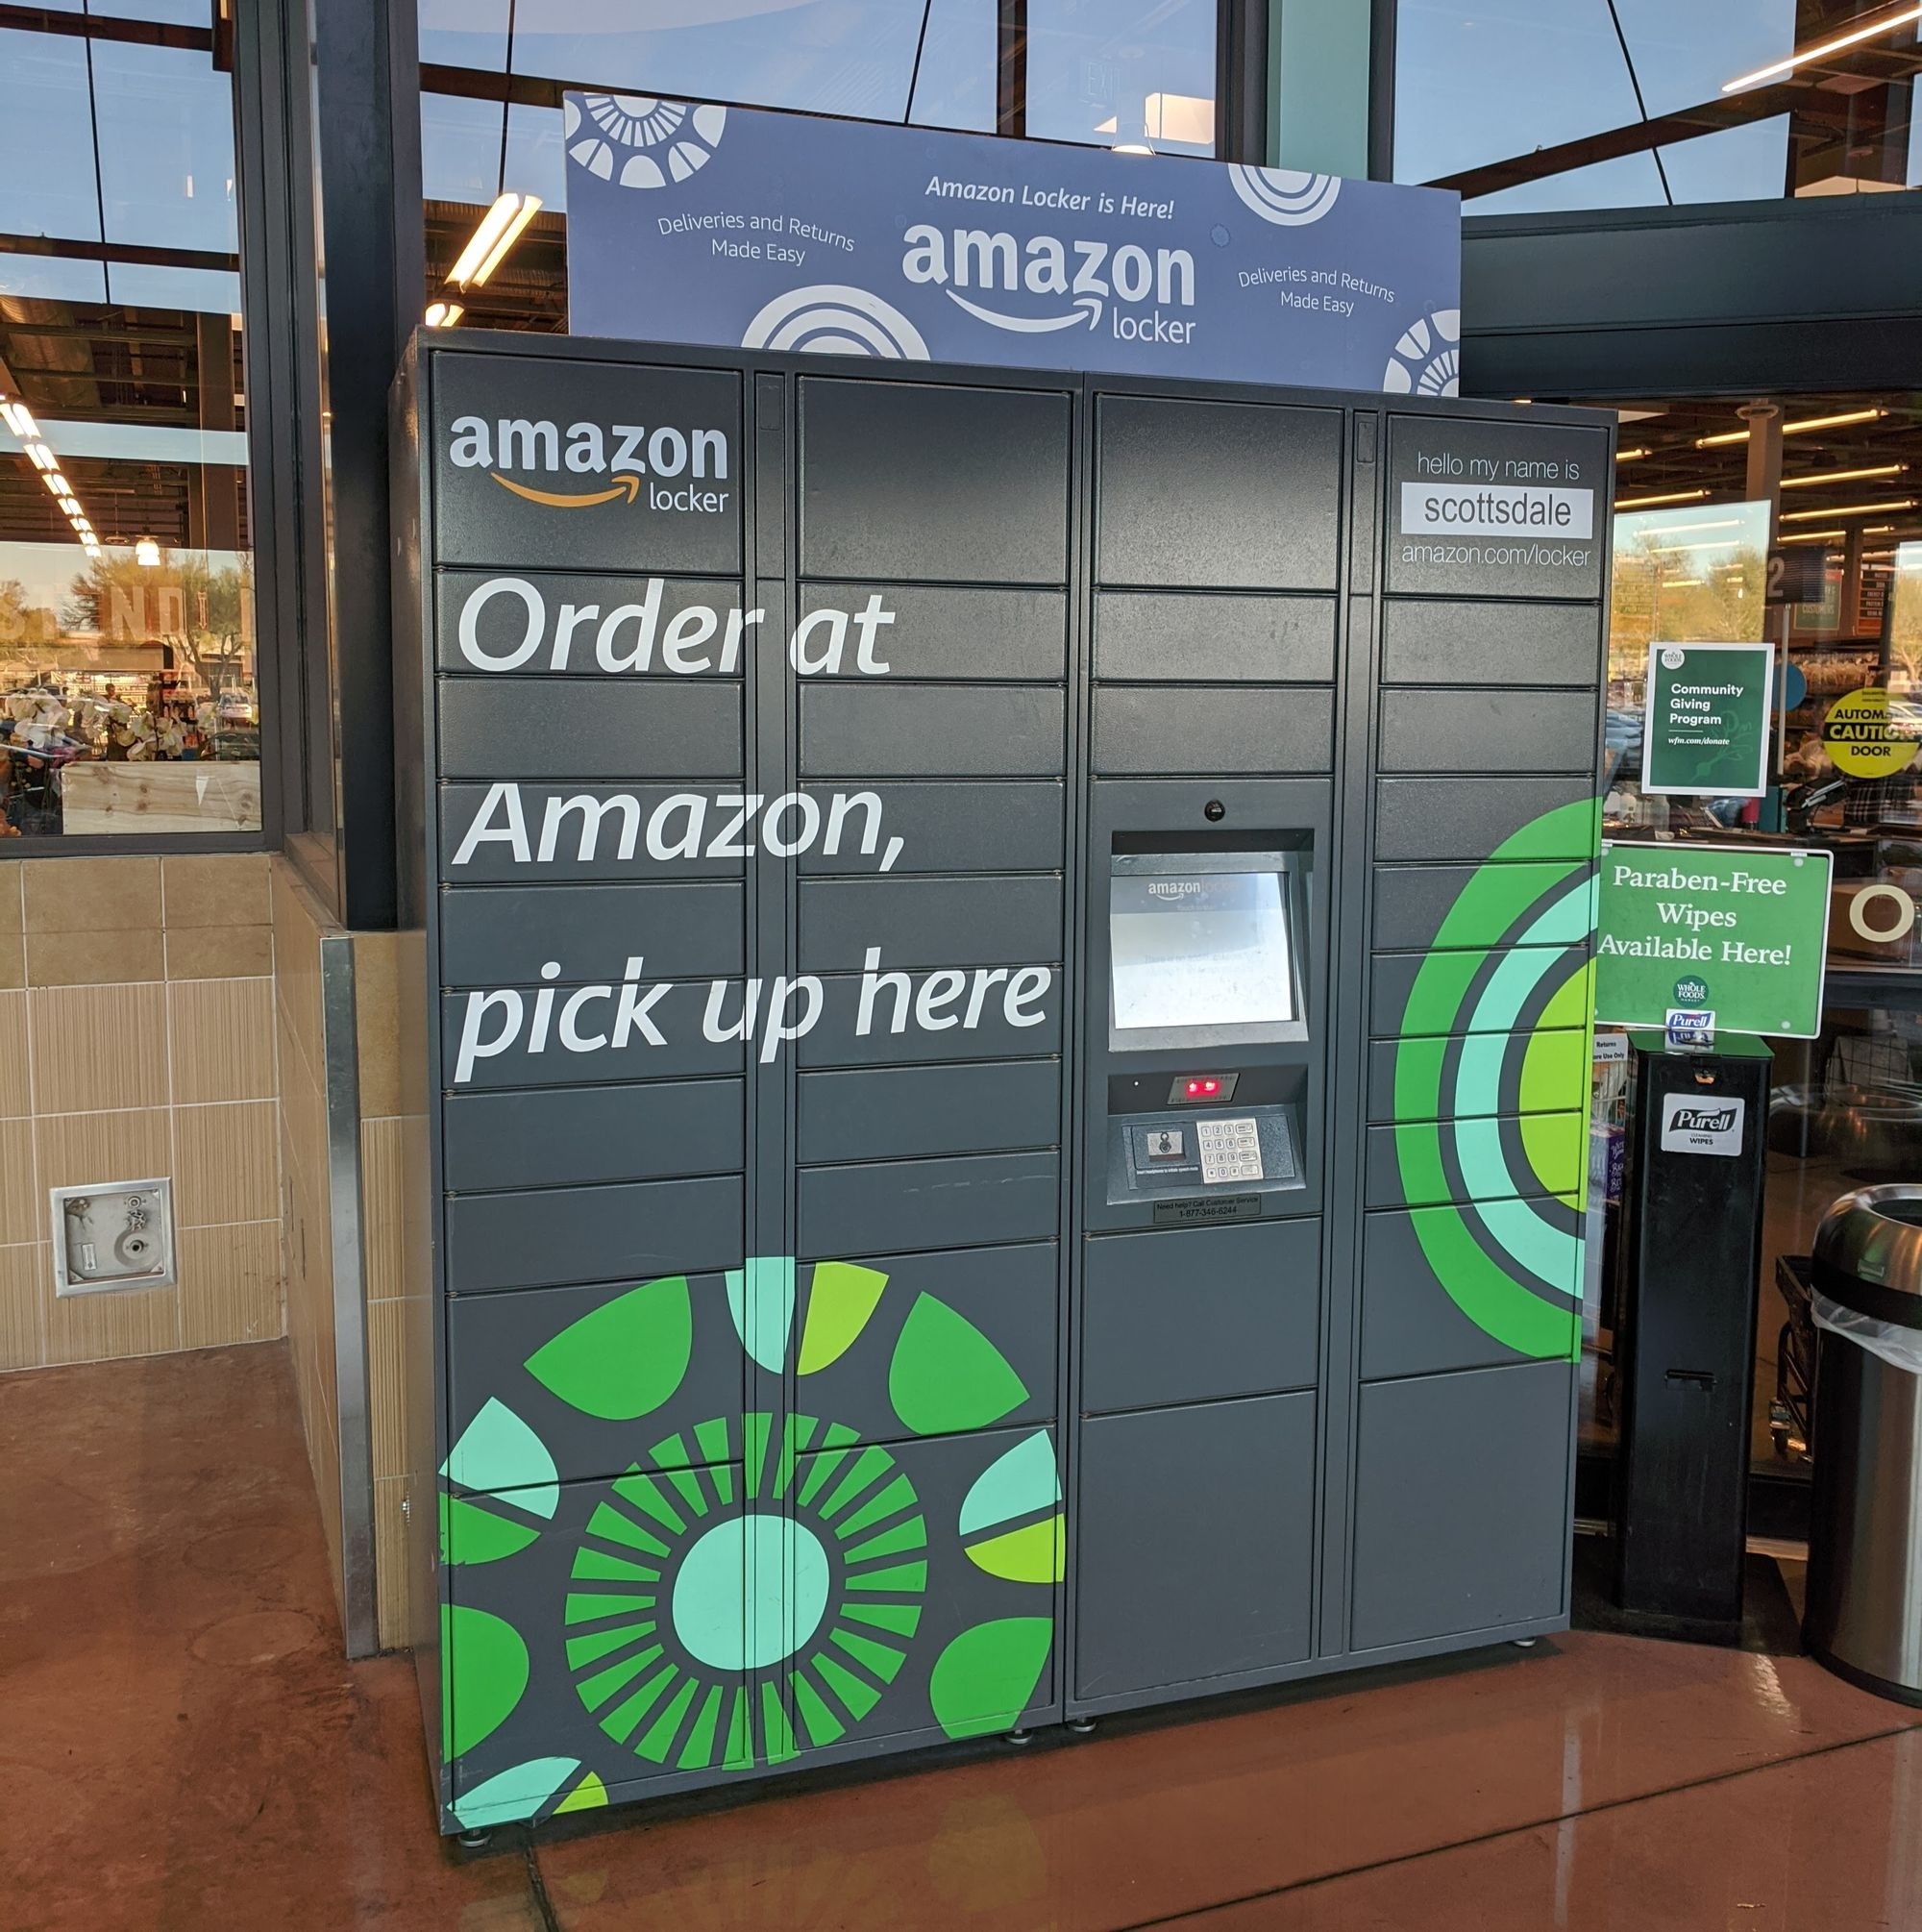 The Amazon Locker in the entrance of Whole Foods